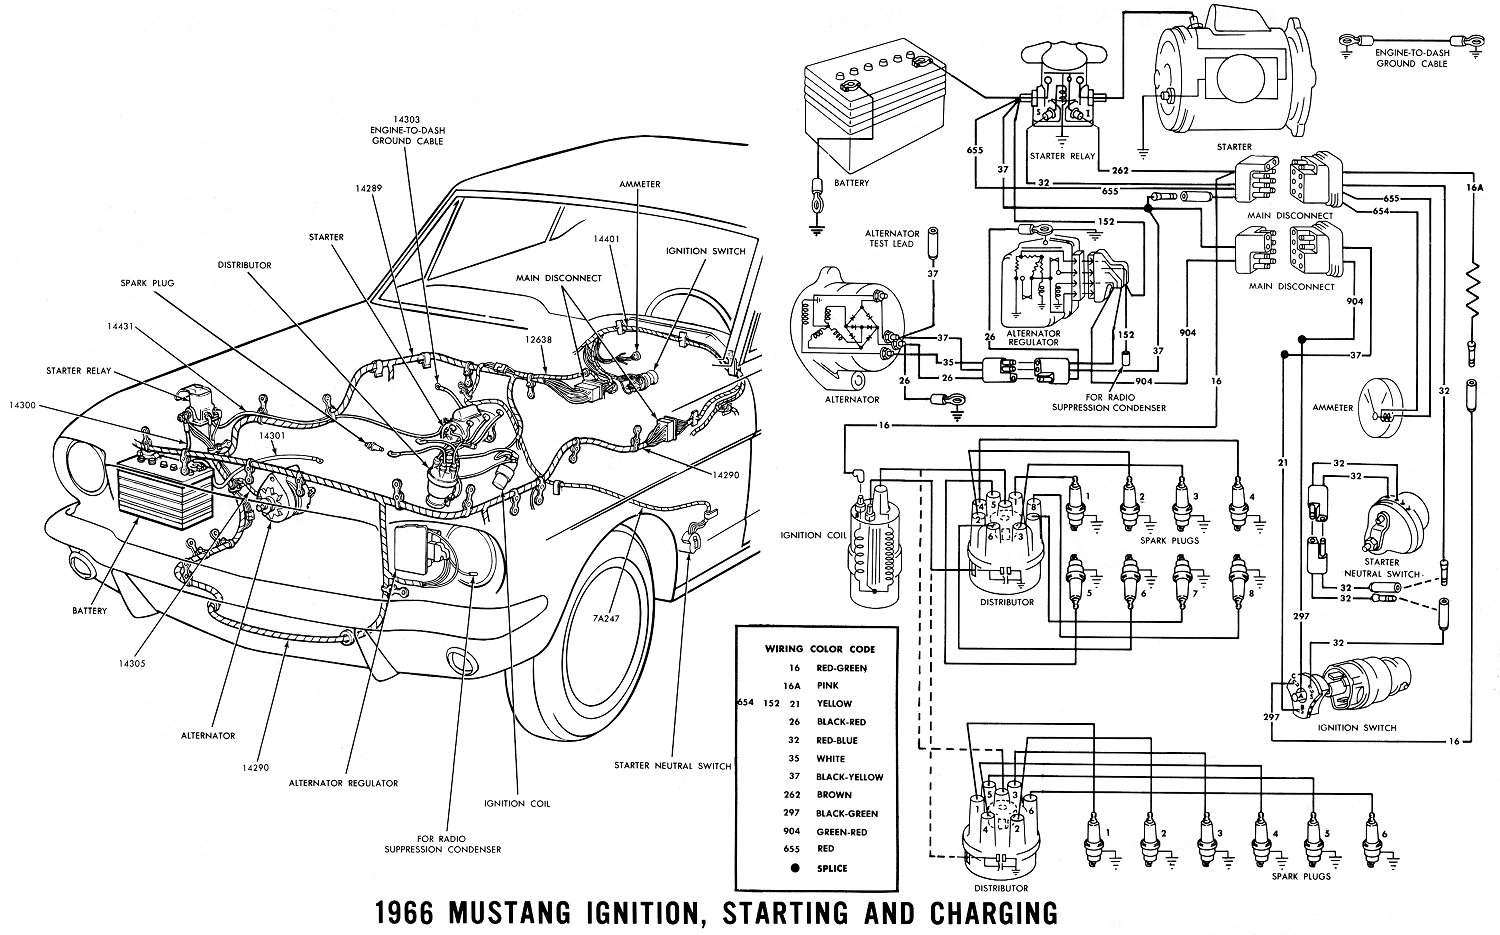 66ignit 1966 mustang wiring diagrams average joe restoration 1965 mustang under dash wiring diagram at love-stories.co